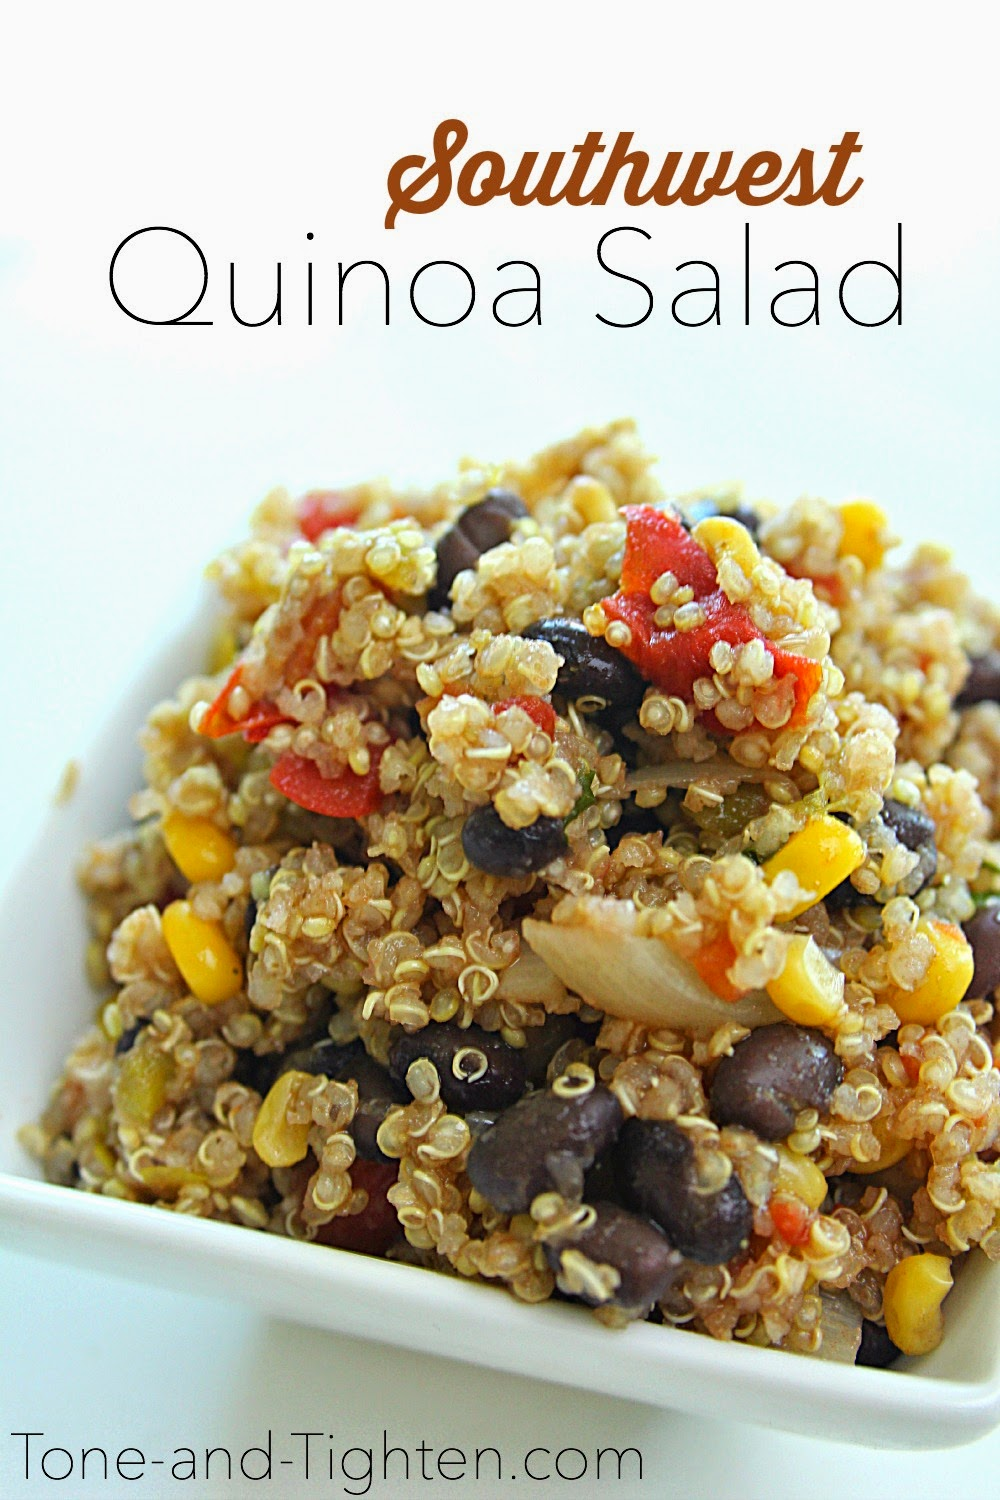 Southwest Quinoa Salad on Tone-and-Tighten